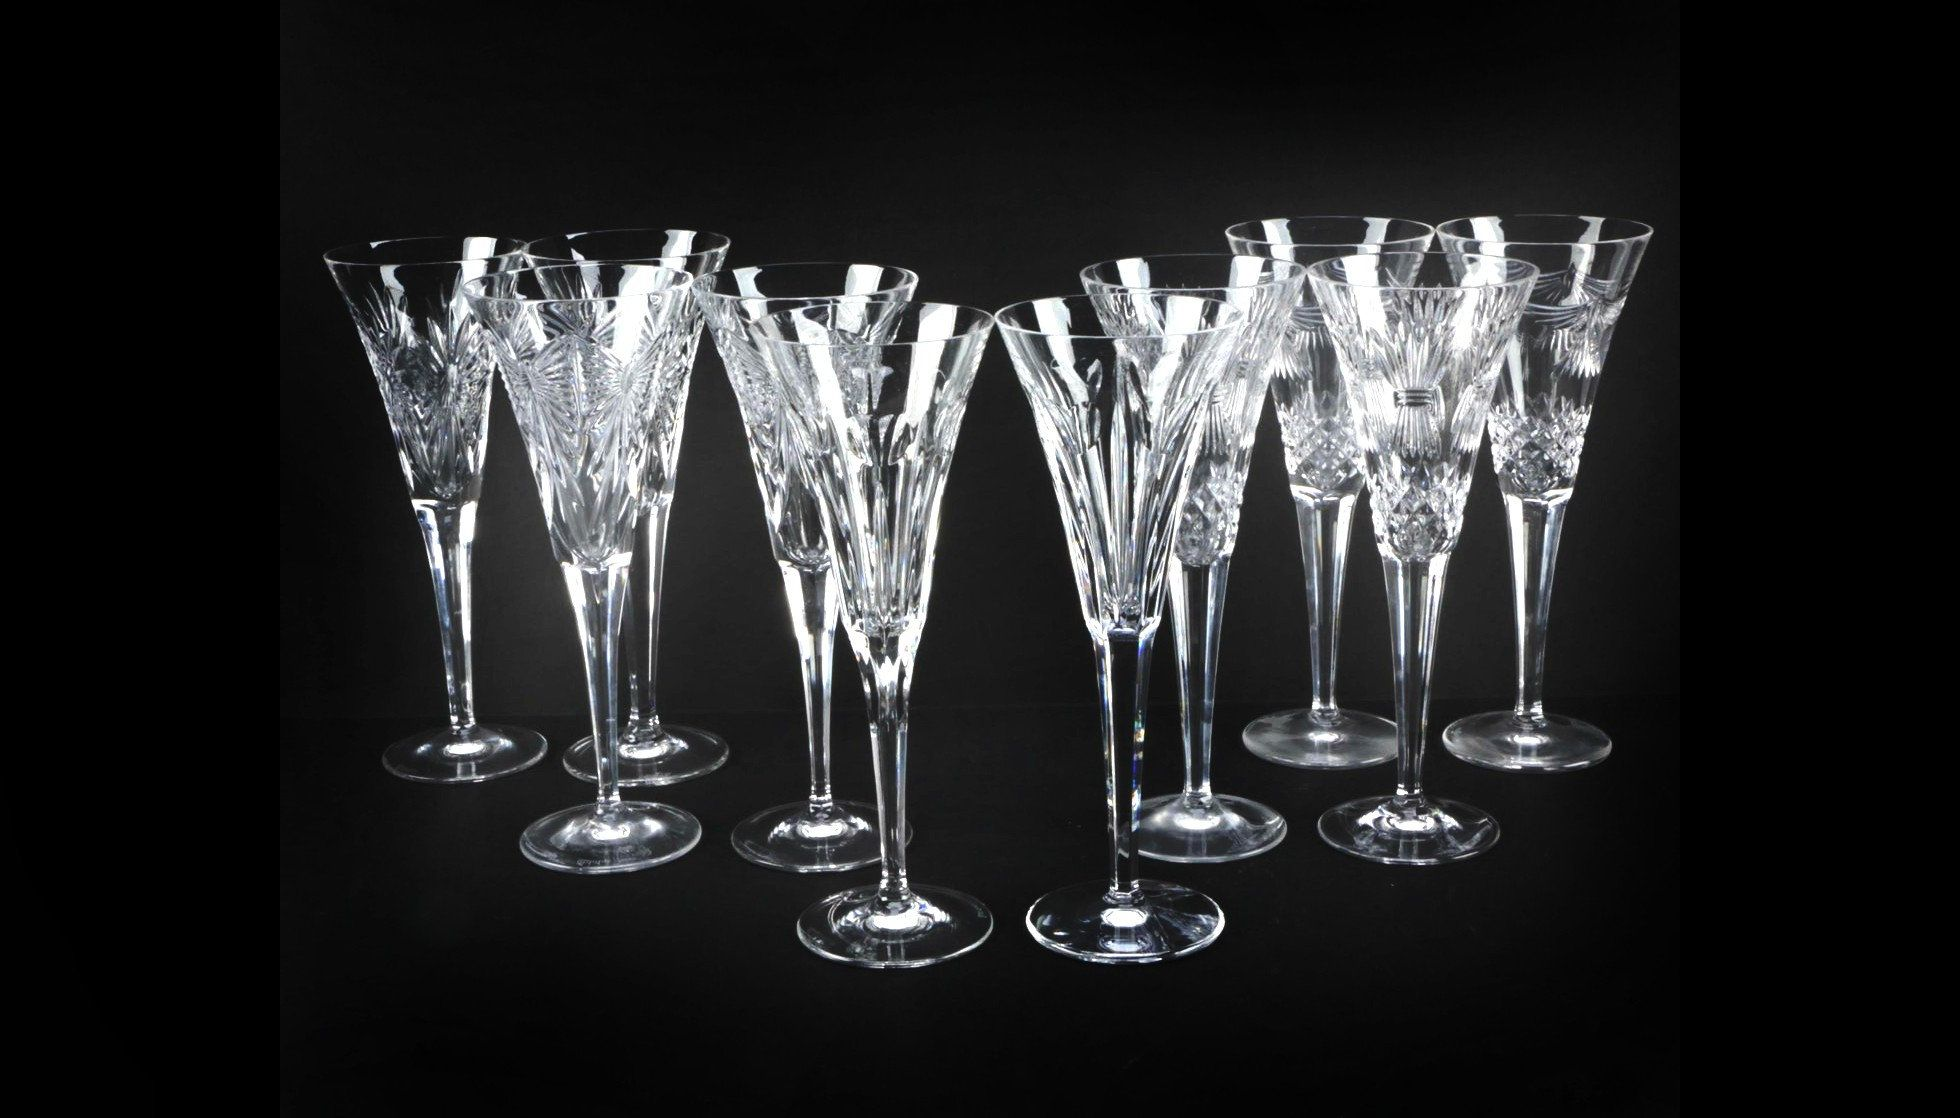 Waterford Champagne Flutes Crystal Millennium Collection Complete Toasts To Humanity Happiness Love Crystal Champagne Flutes Vintage Crystal Champagne Flutes